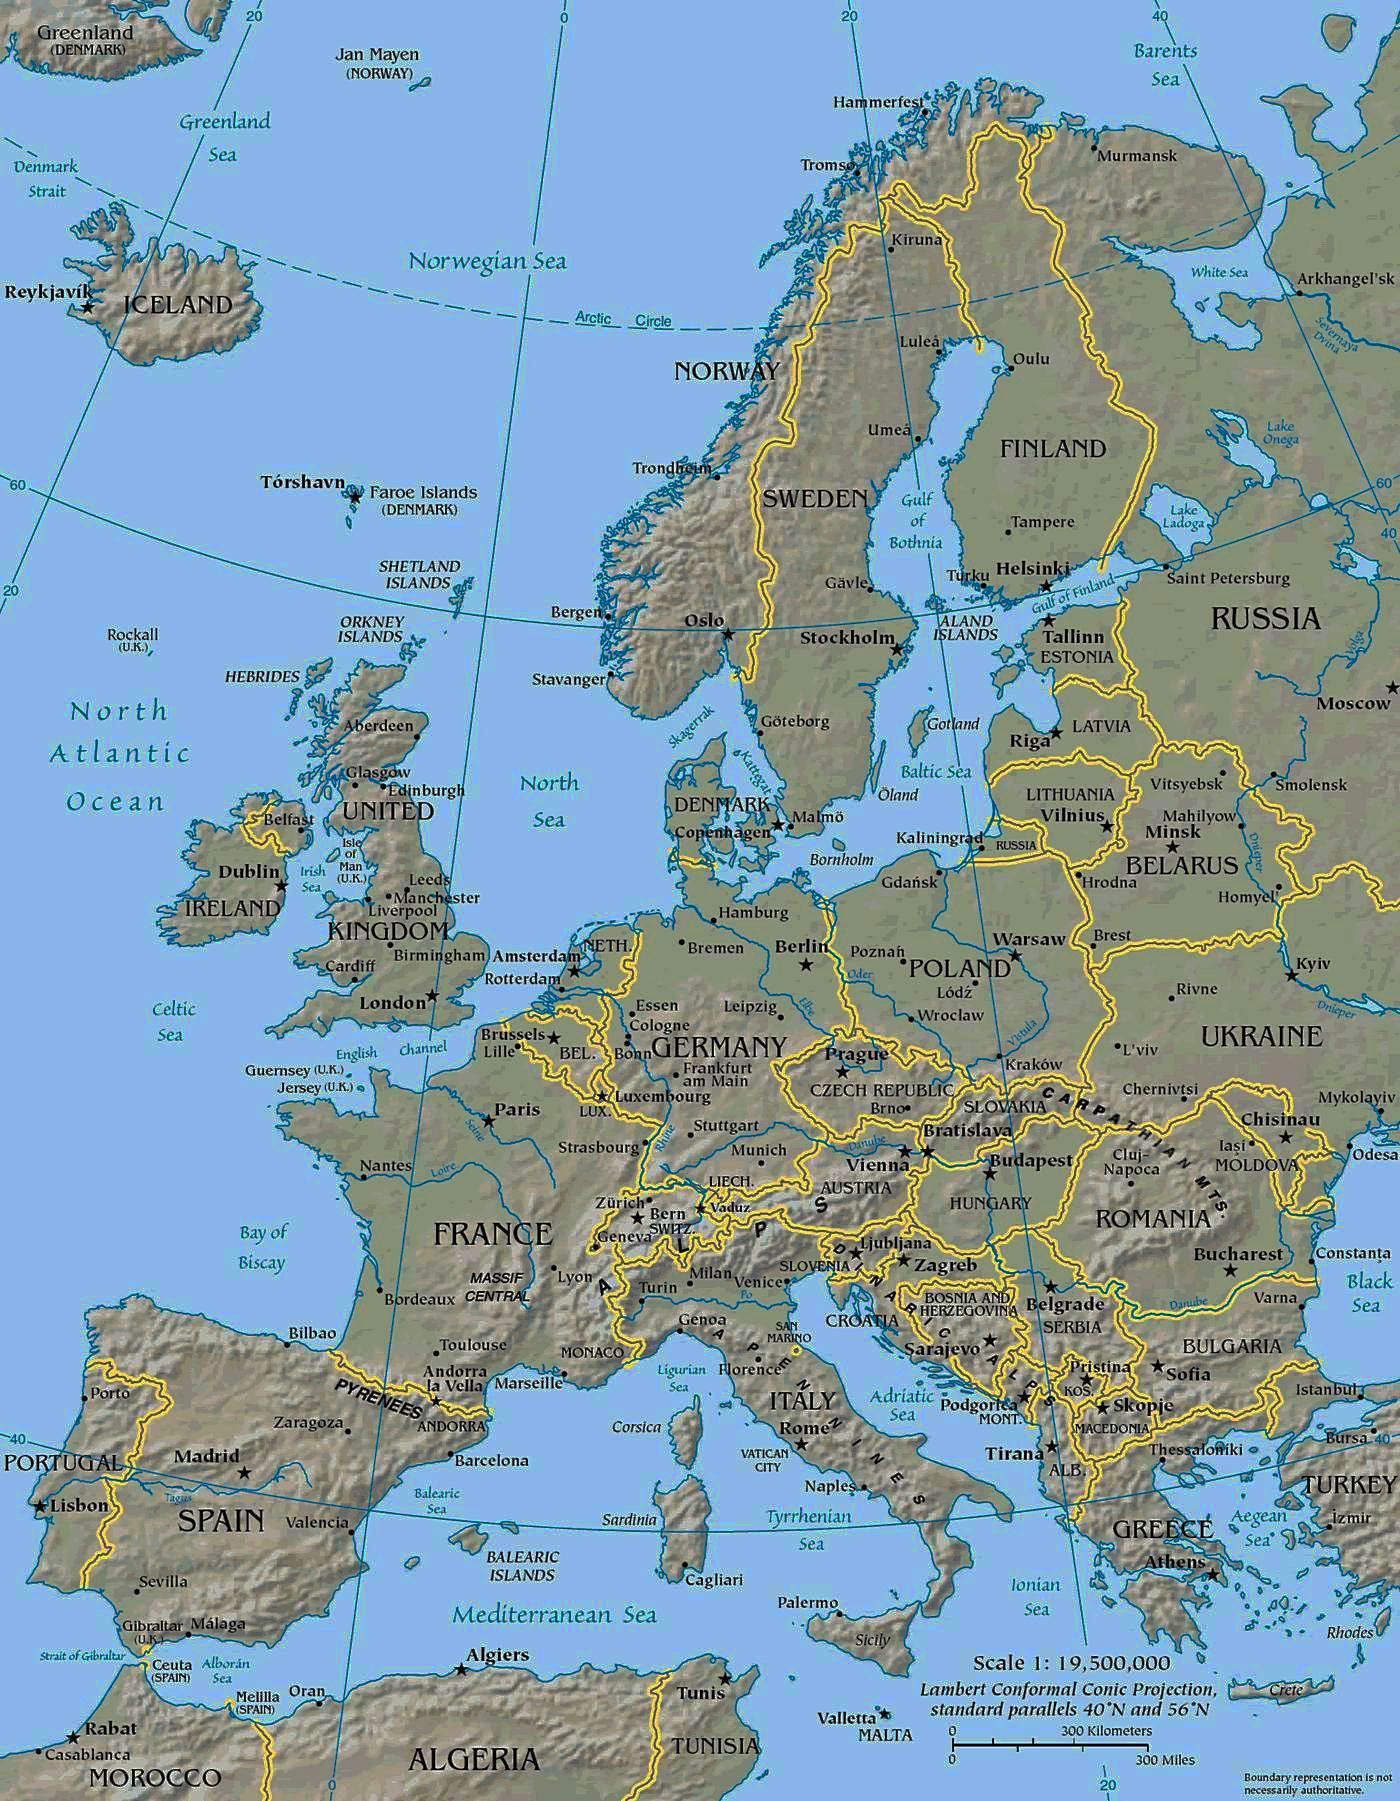 Tom S Super Guide To Planning A Trip Backpacking Through Europe